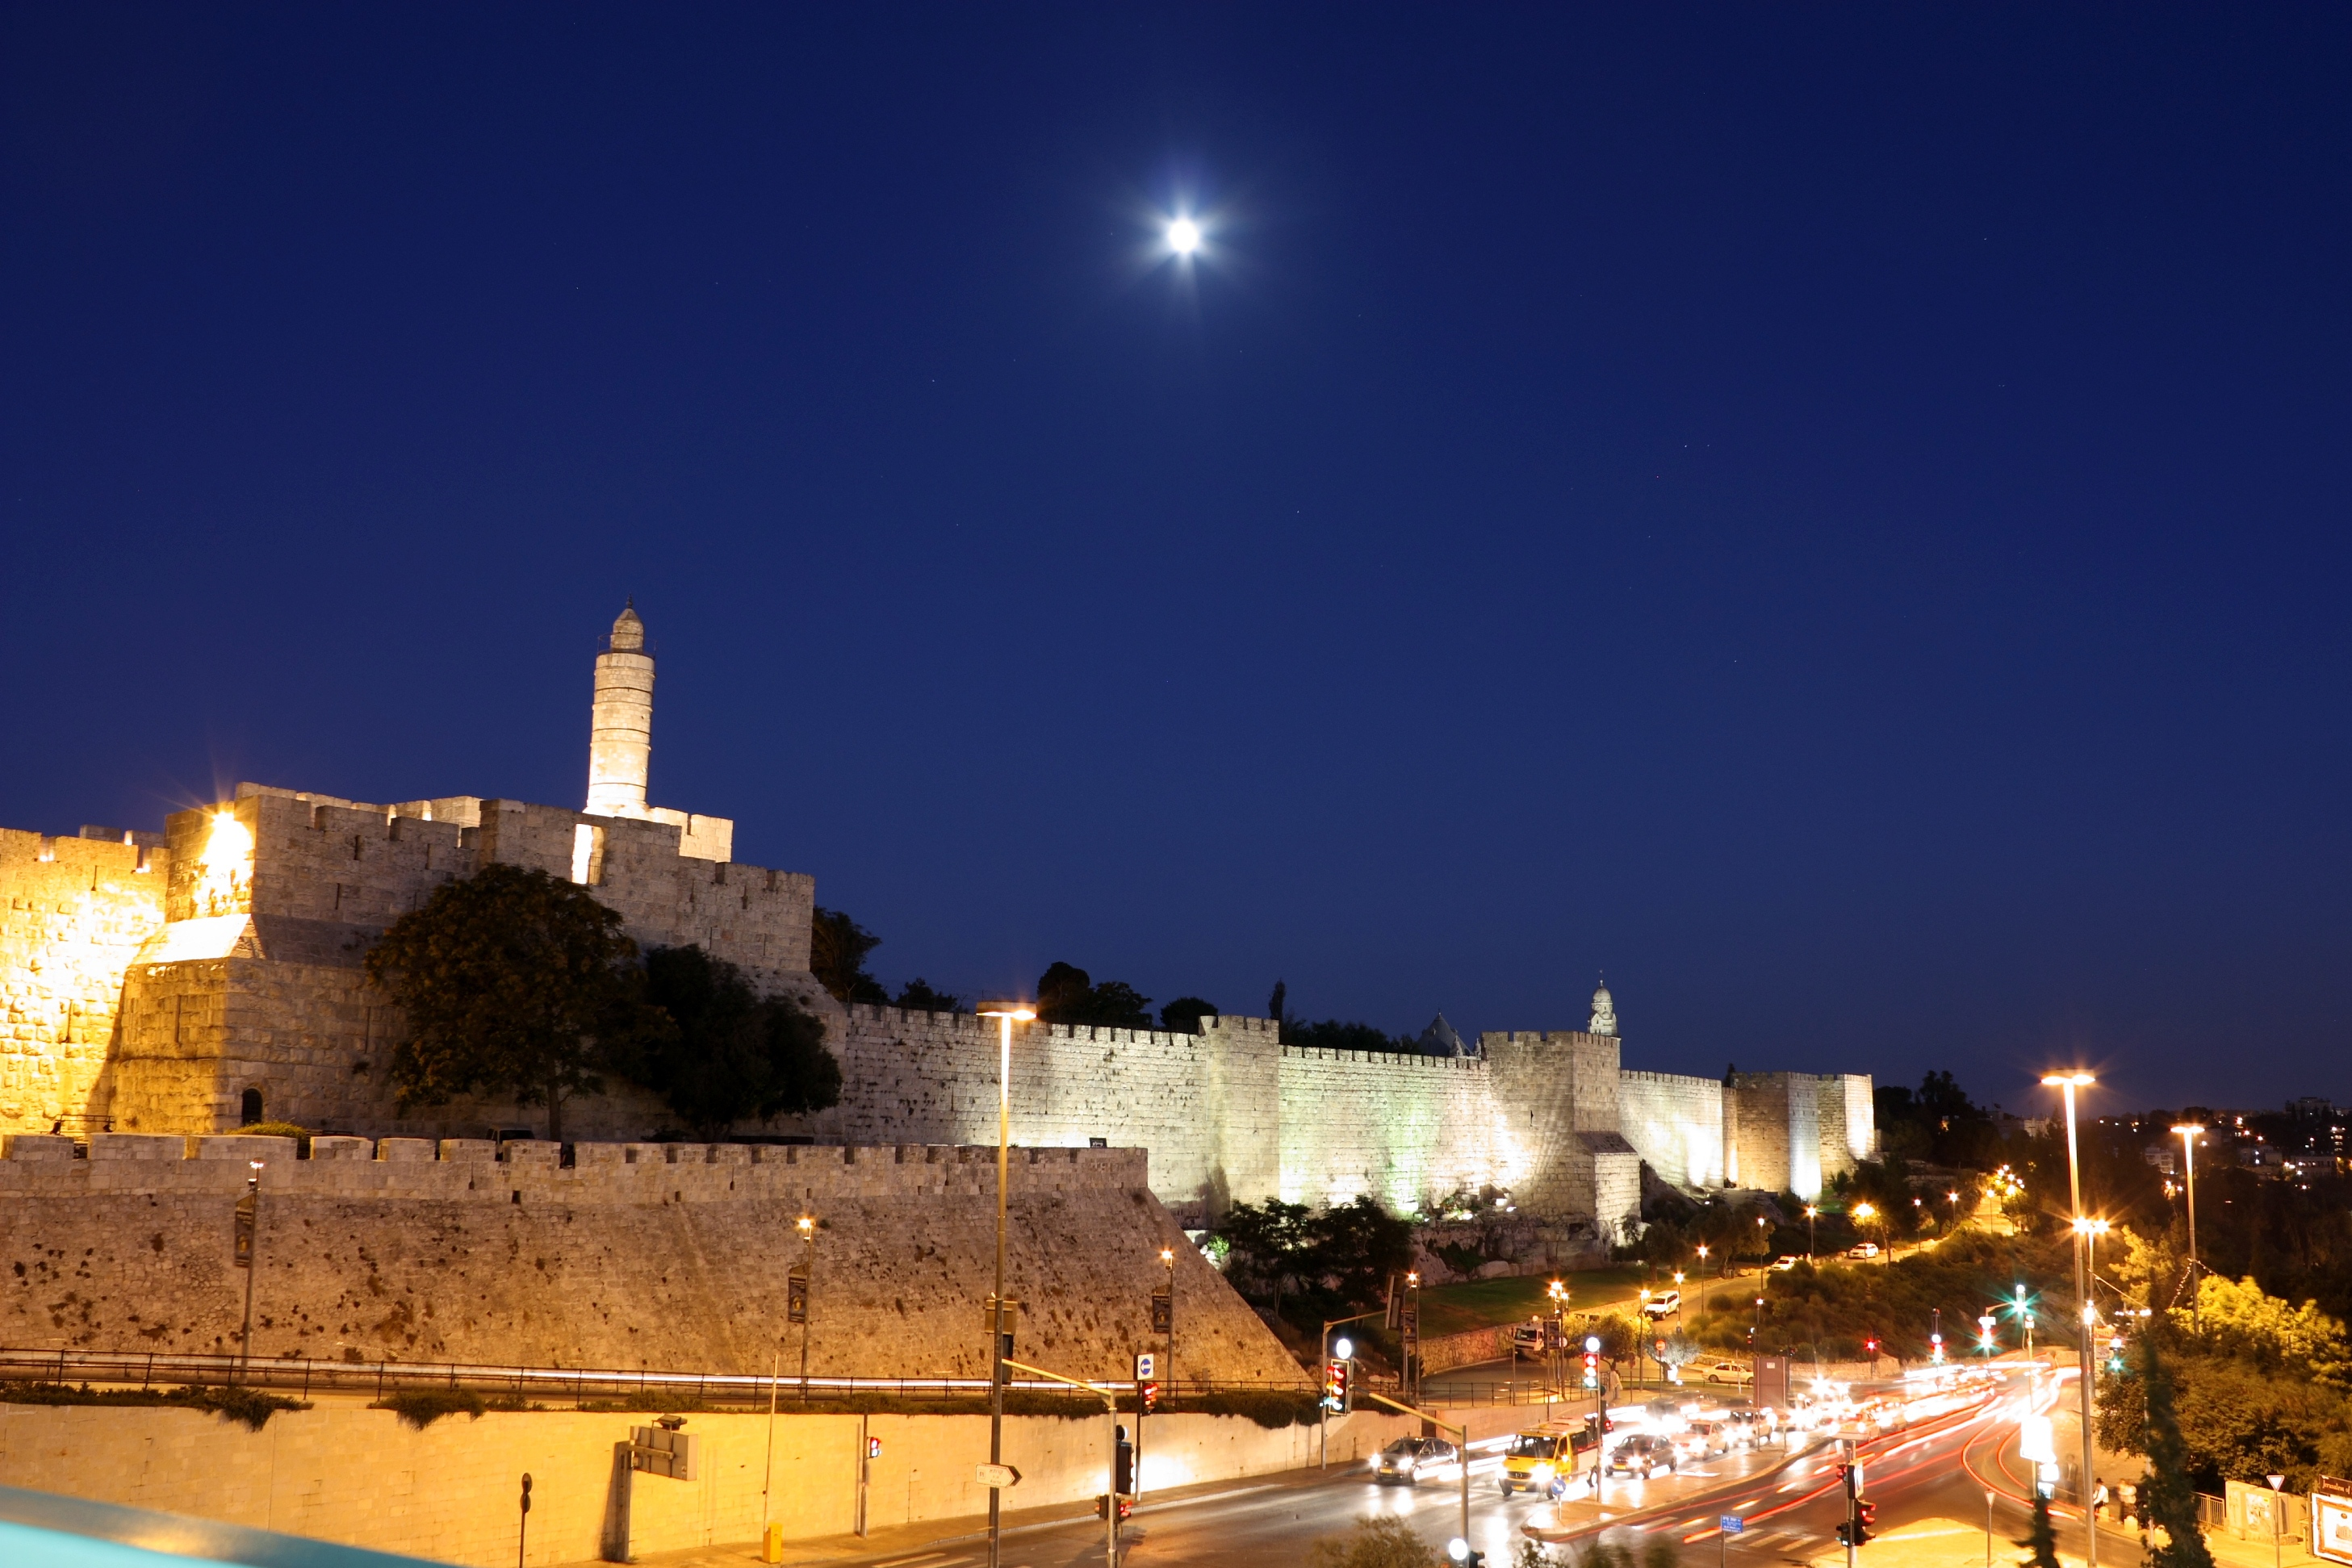 https://upload.wikimedia.org/wikipedia/commons/e/e7/Jerusalem_walls_night_3.JPG